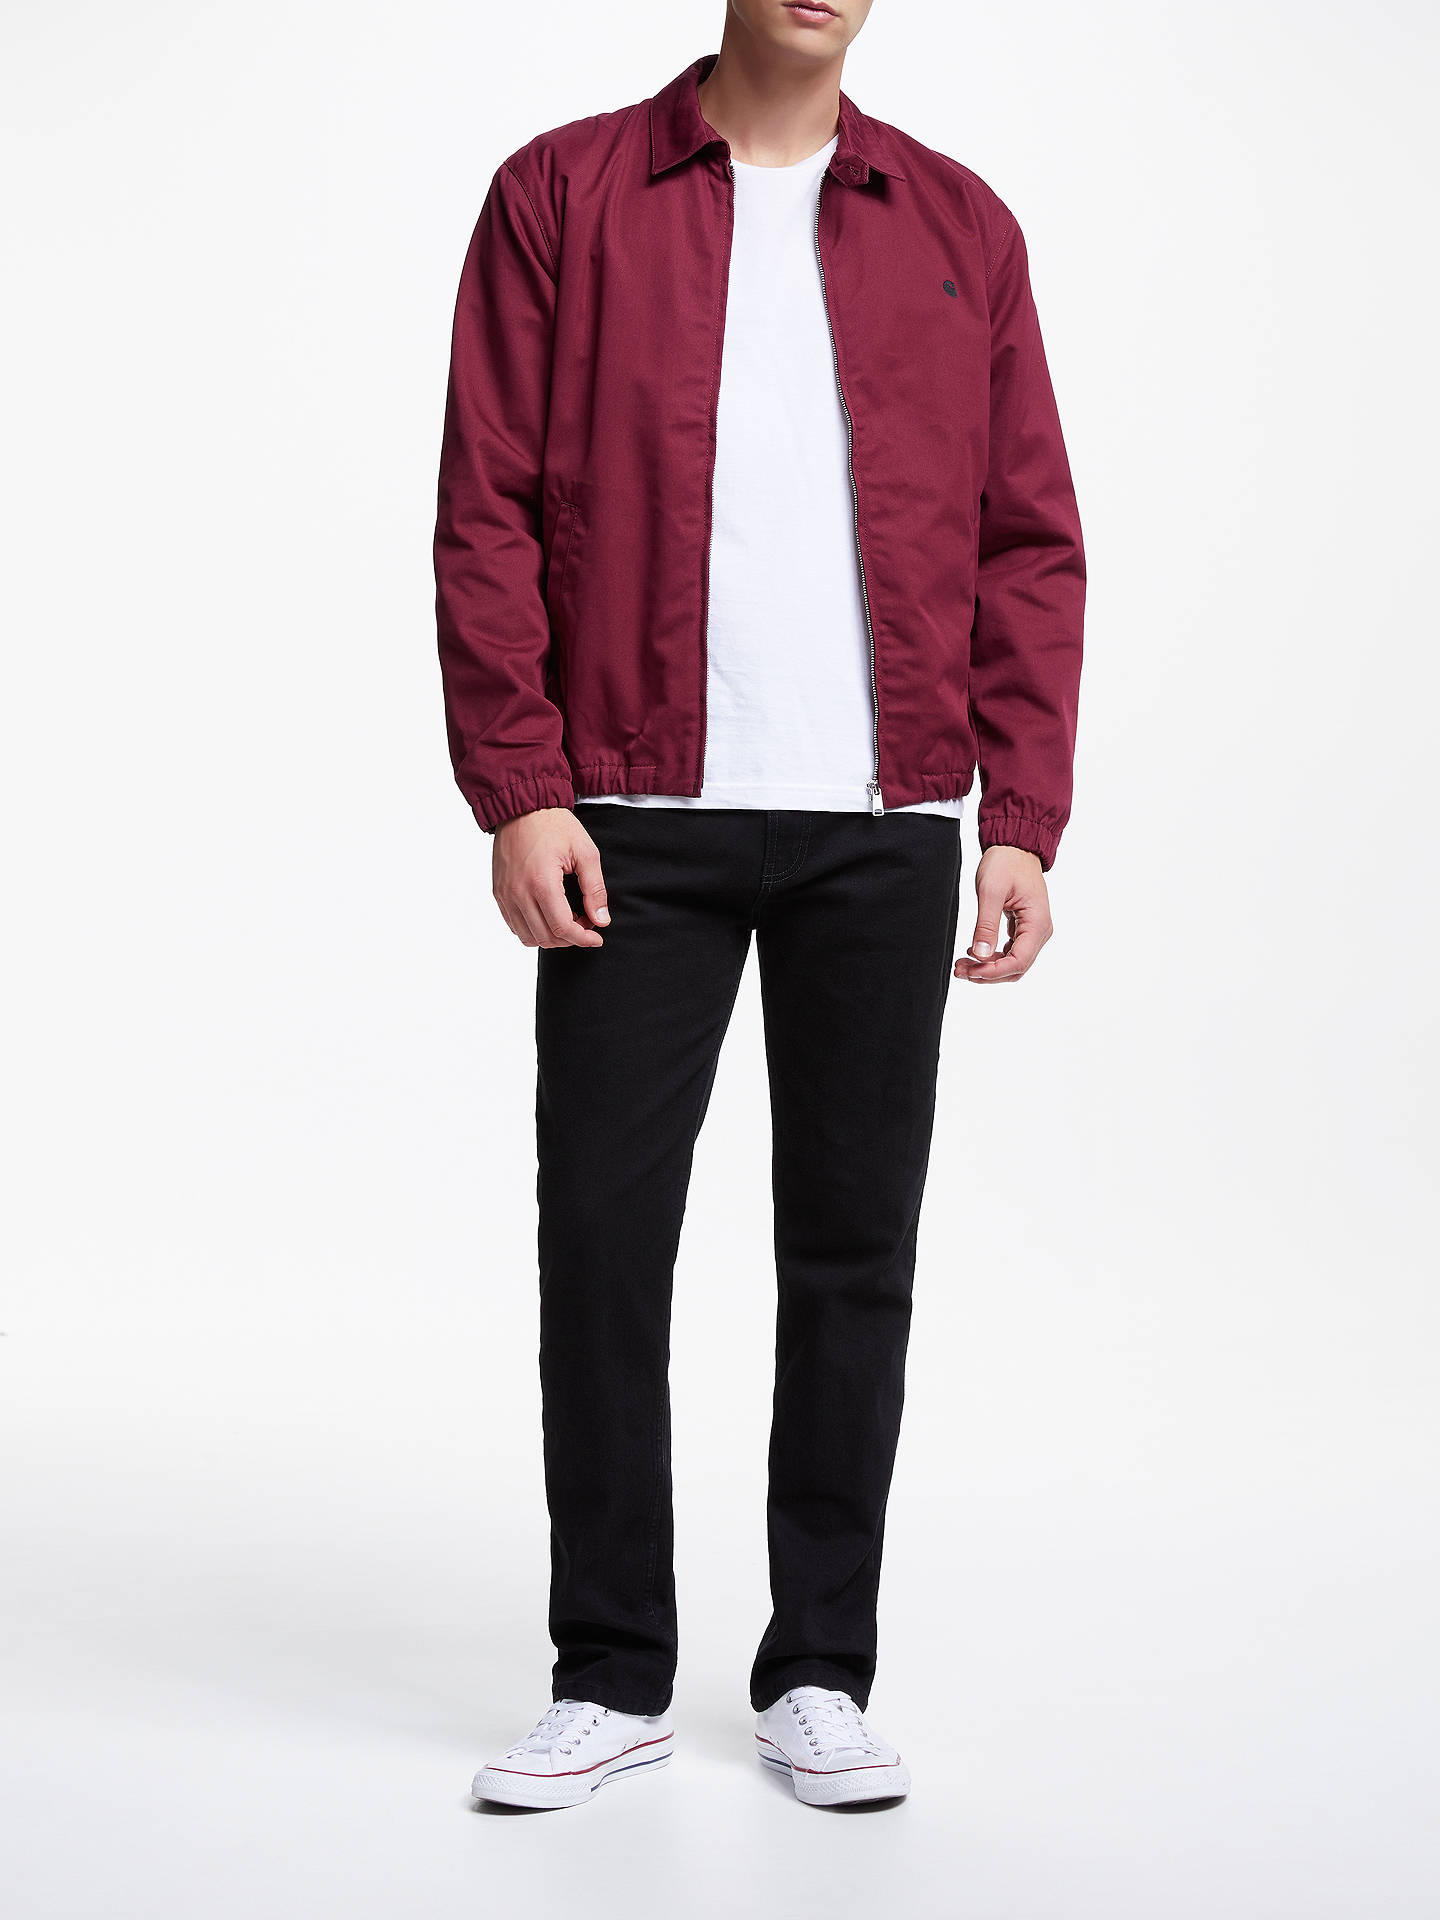 Buy Carhartt WIP Madison Twill Collared Jacket, Mulberry, S Online at johnlewis.com